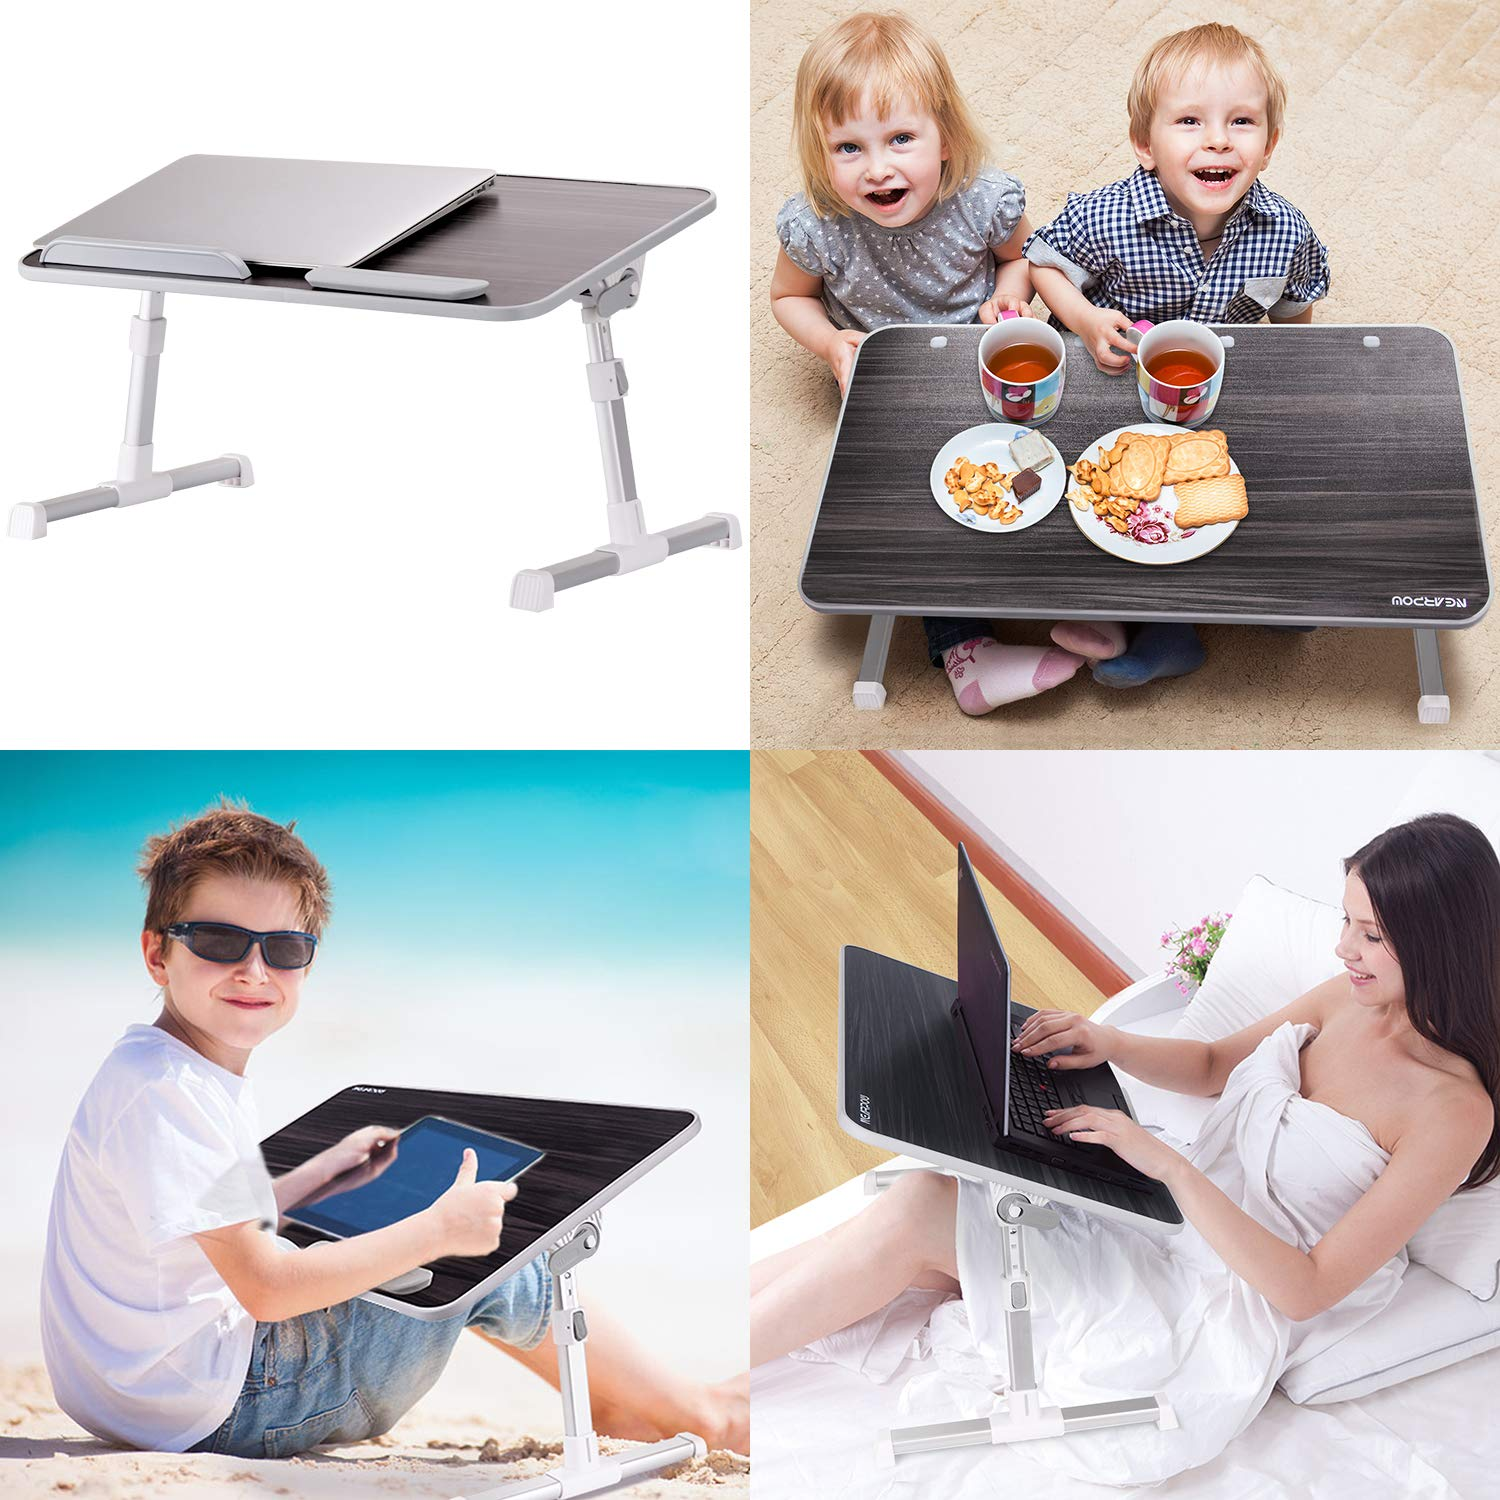 Portable Standing Table with Foldable Legs, Foldable Lap Tablet Table for Sofa Couch Floor - Medium Size